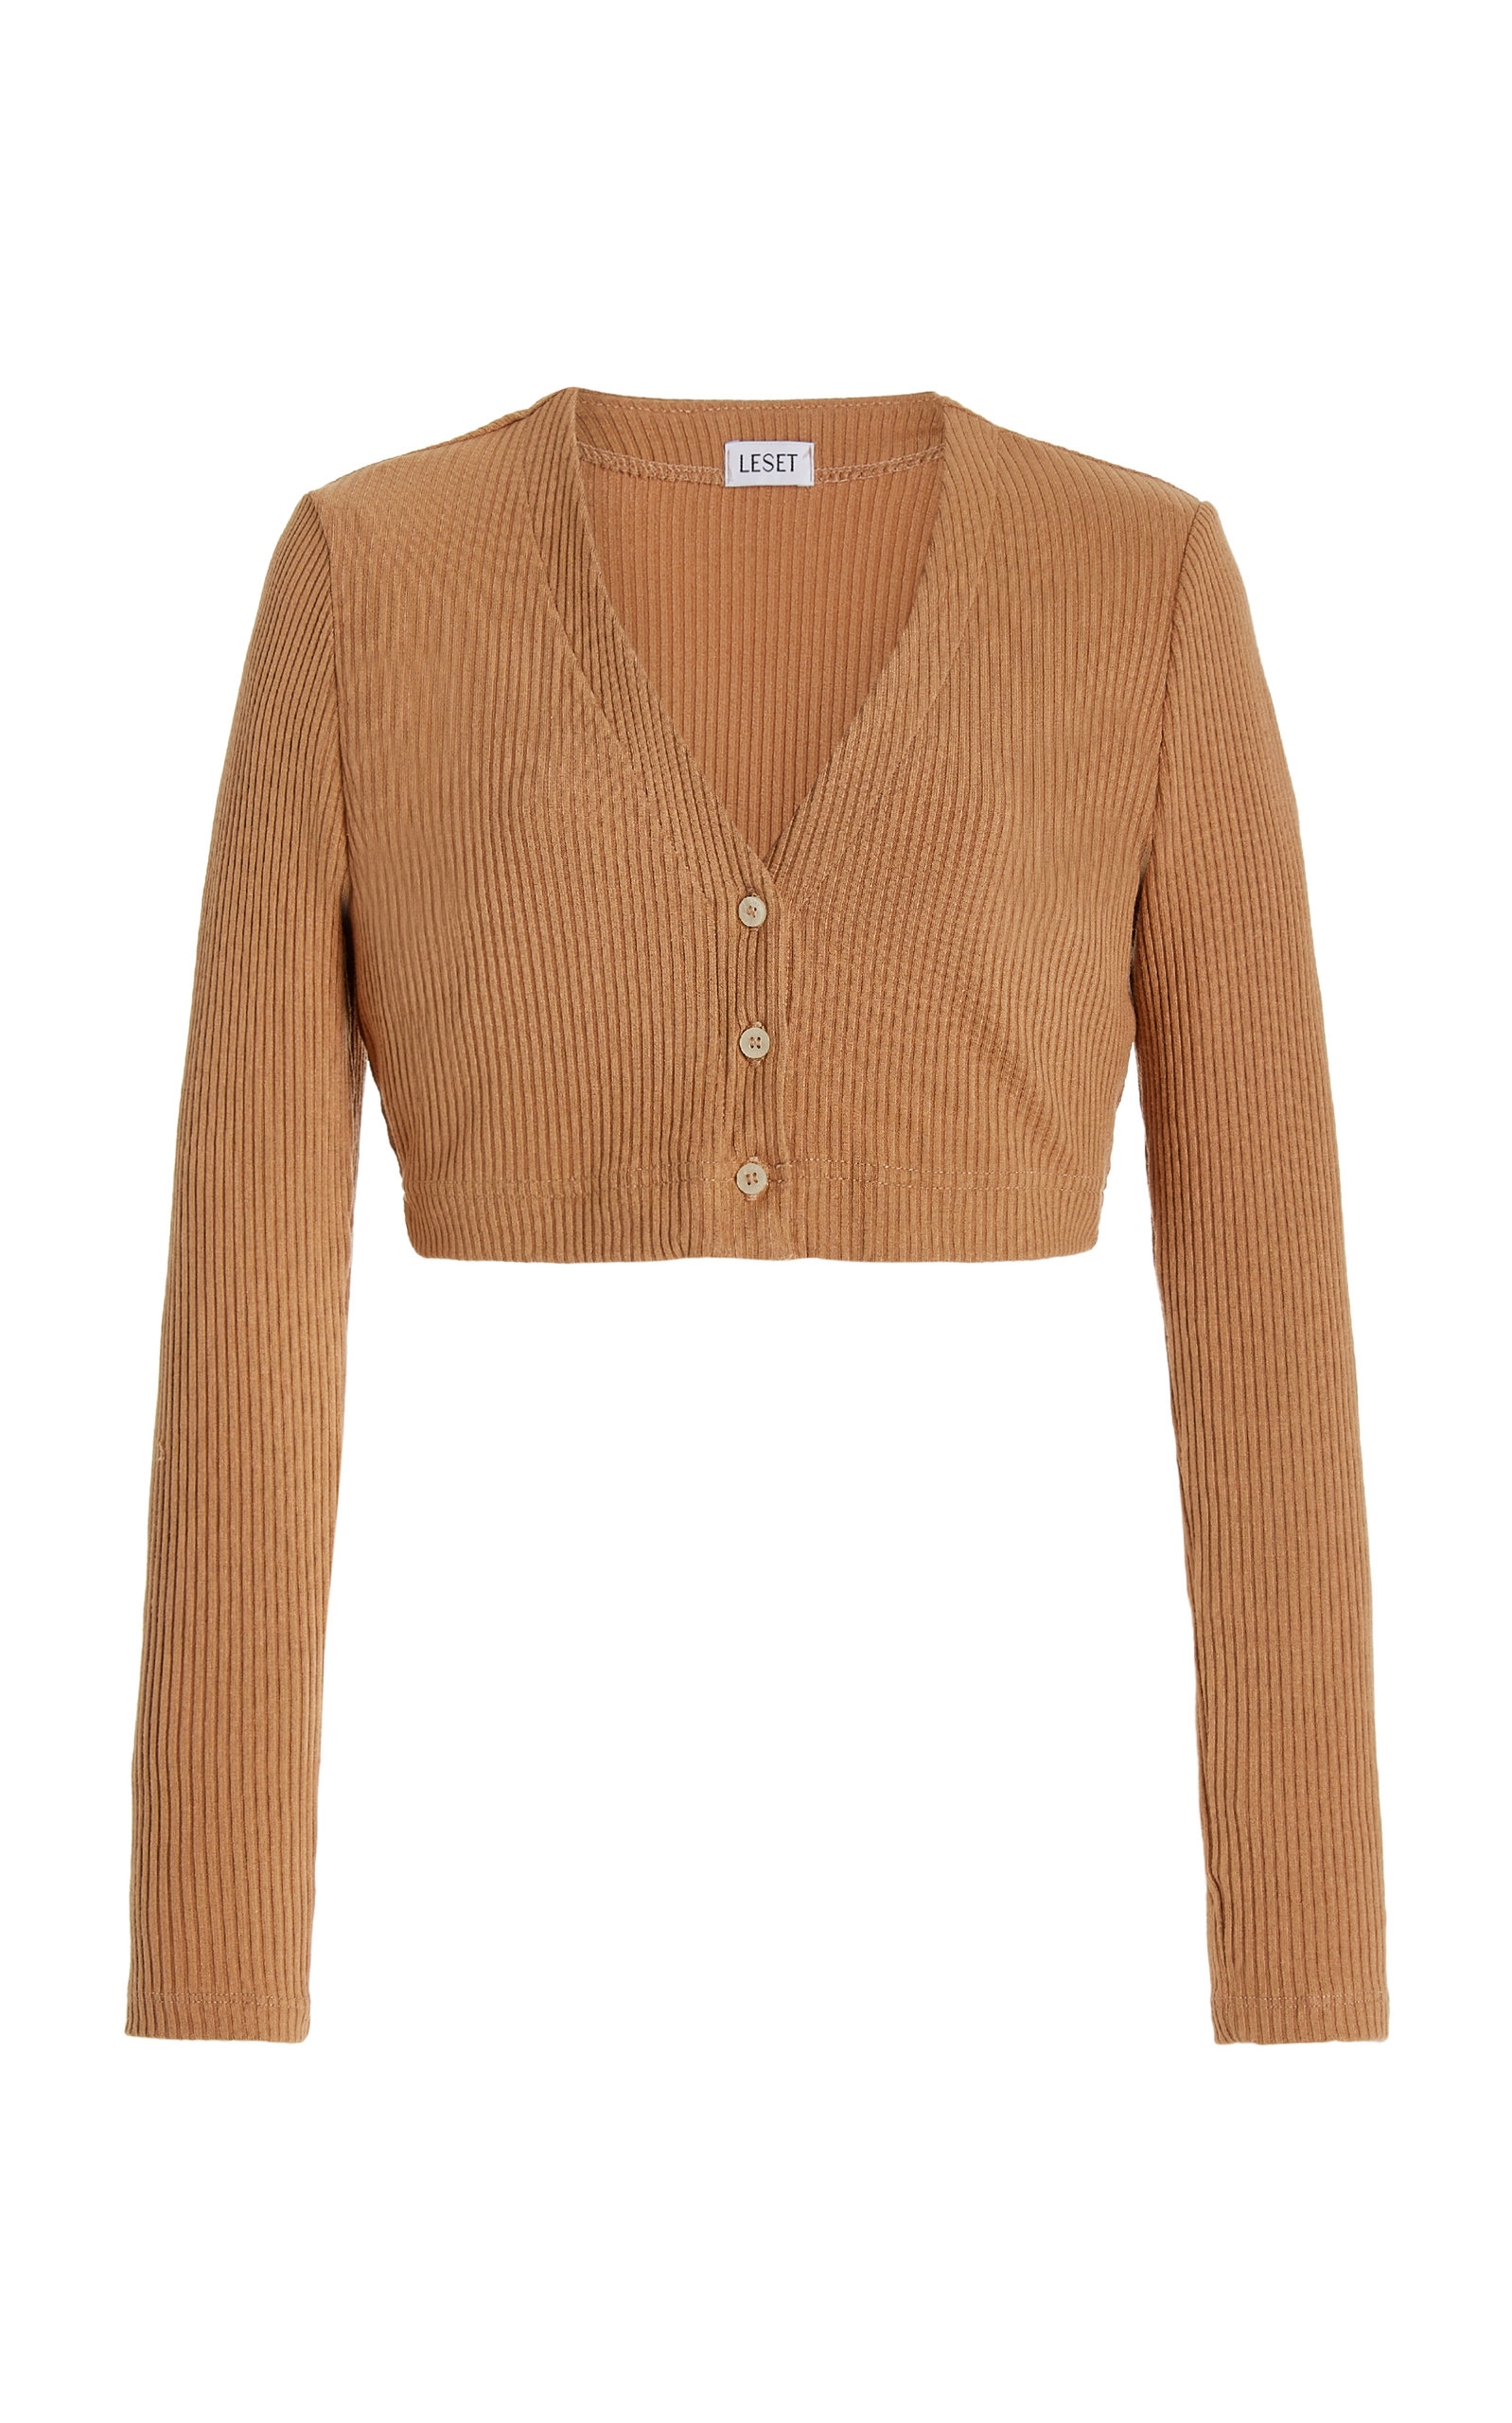 Women's Ali Cropped Ribbed Knit Cardigan